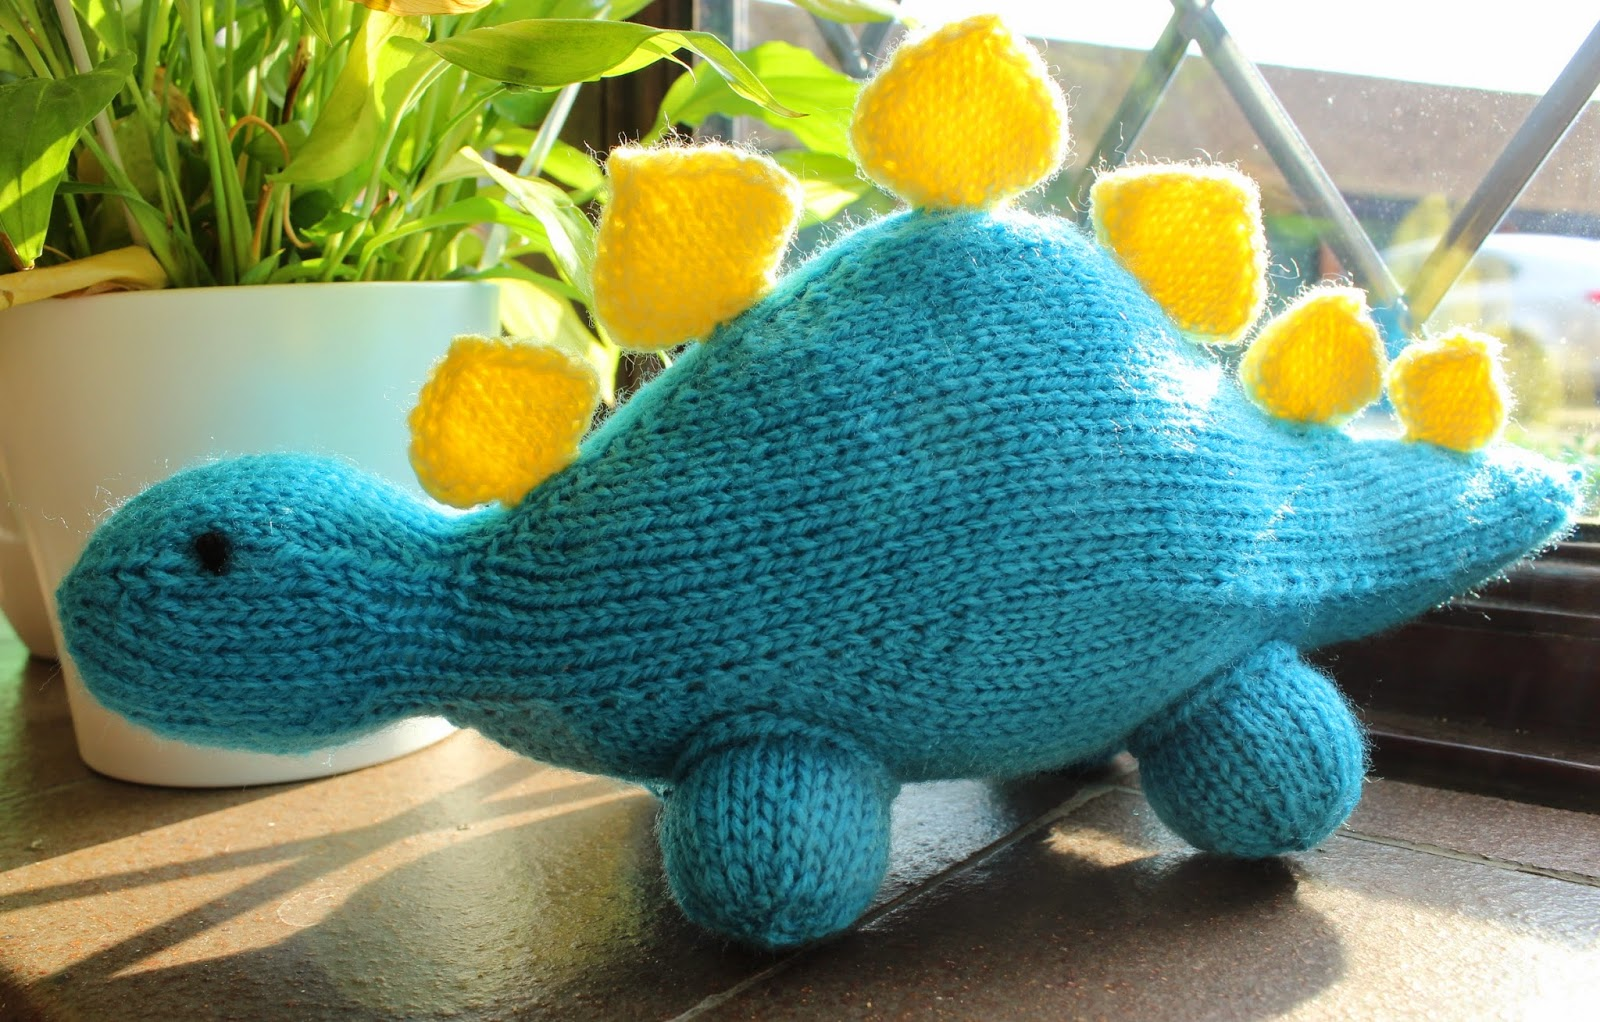 floral and feather: Finished project - a knitted dinosaur!